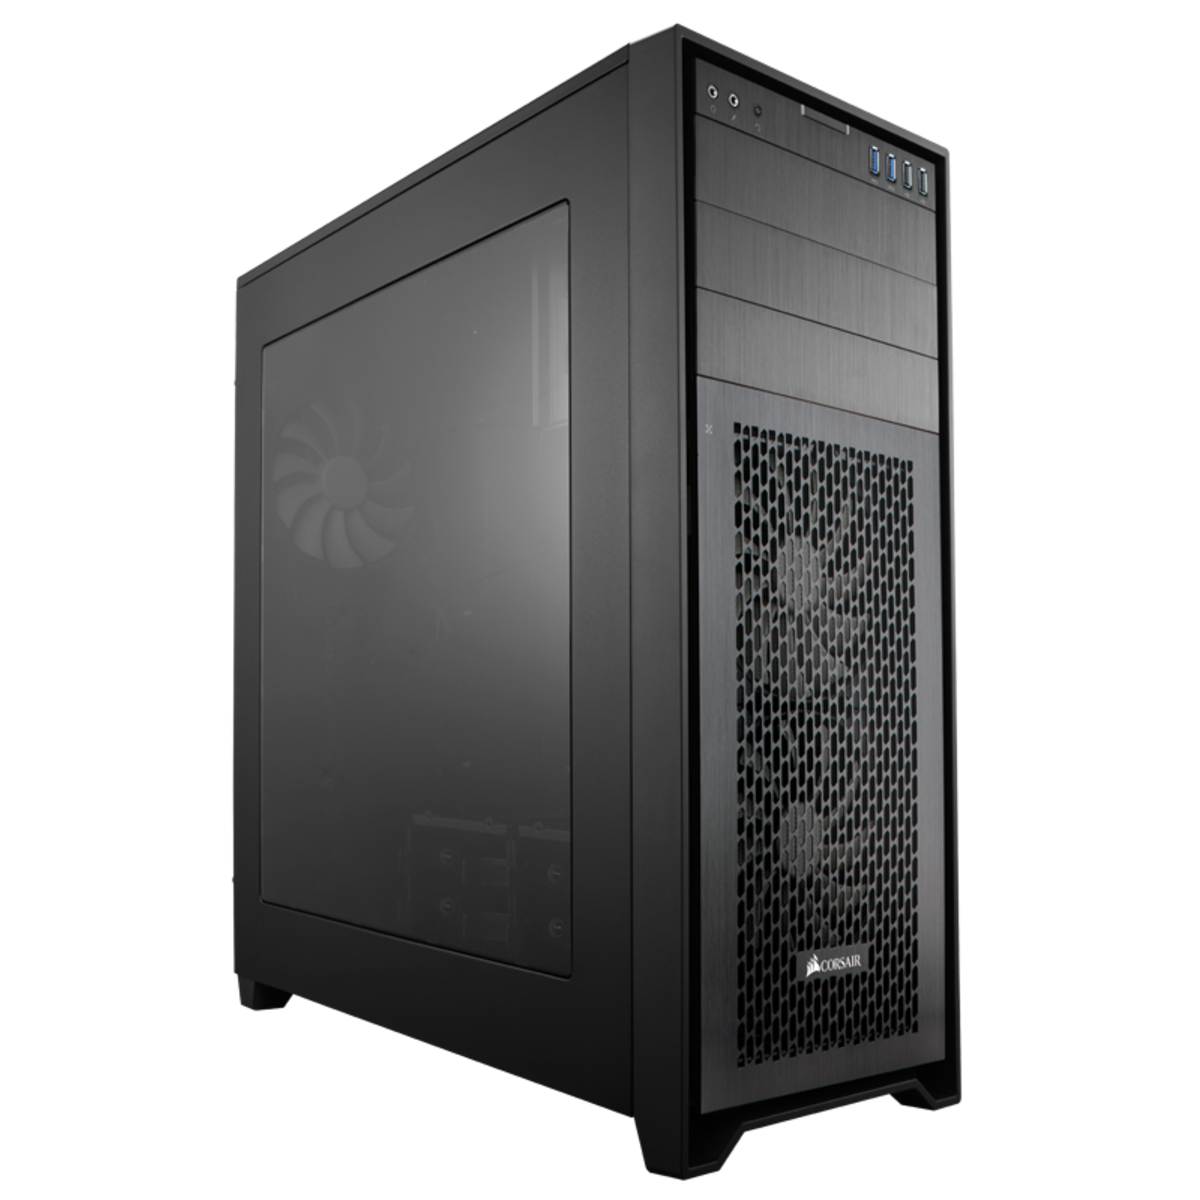 CORSAIR CC-9011078-WW OBSIDIAN 750D AIRFLOW EDITION FULL-TOWER BLACK COMPUTER CASE